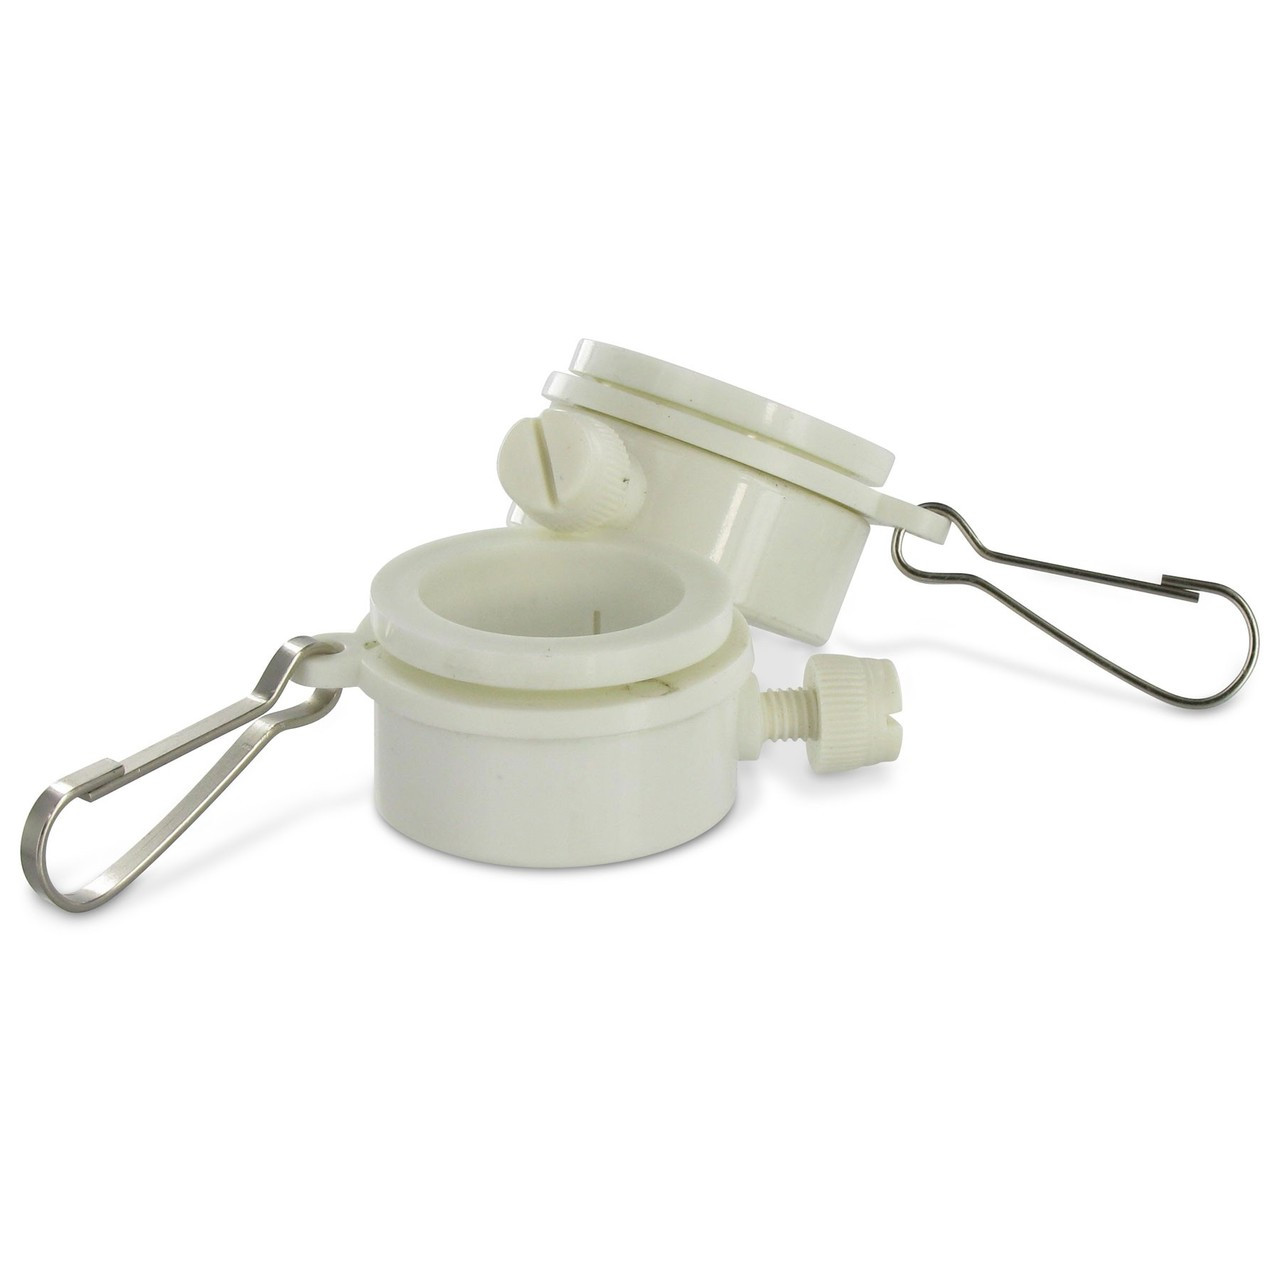 "1-1/4"" PVC Flag Mount Ring with Clip - 00000125"